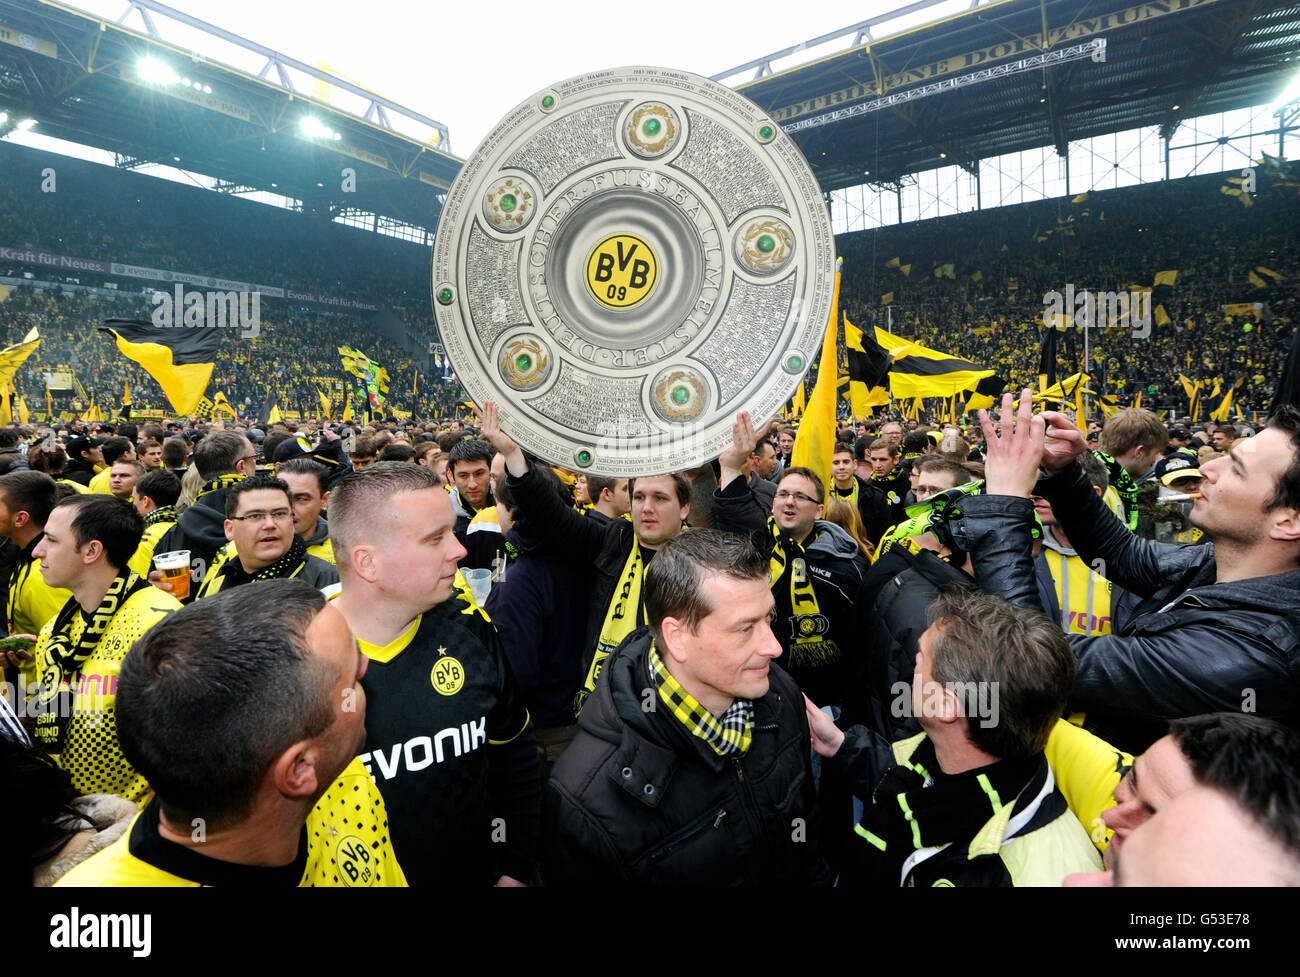 Football club BVB Borussia Dortmund fans on the pitch with a dummy of the league cup trophy, after match Borussia Stock Photo